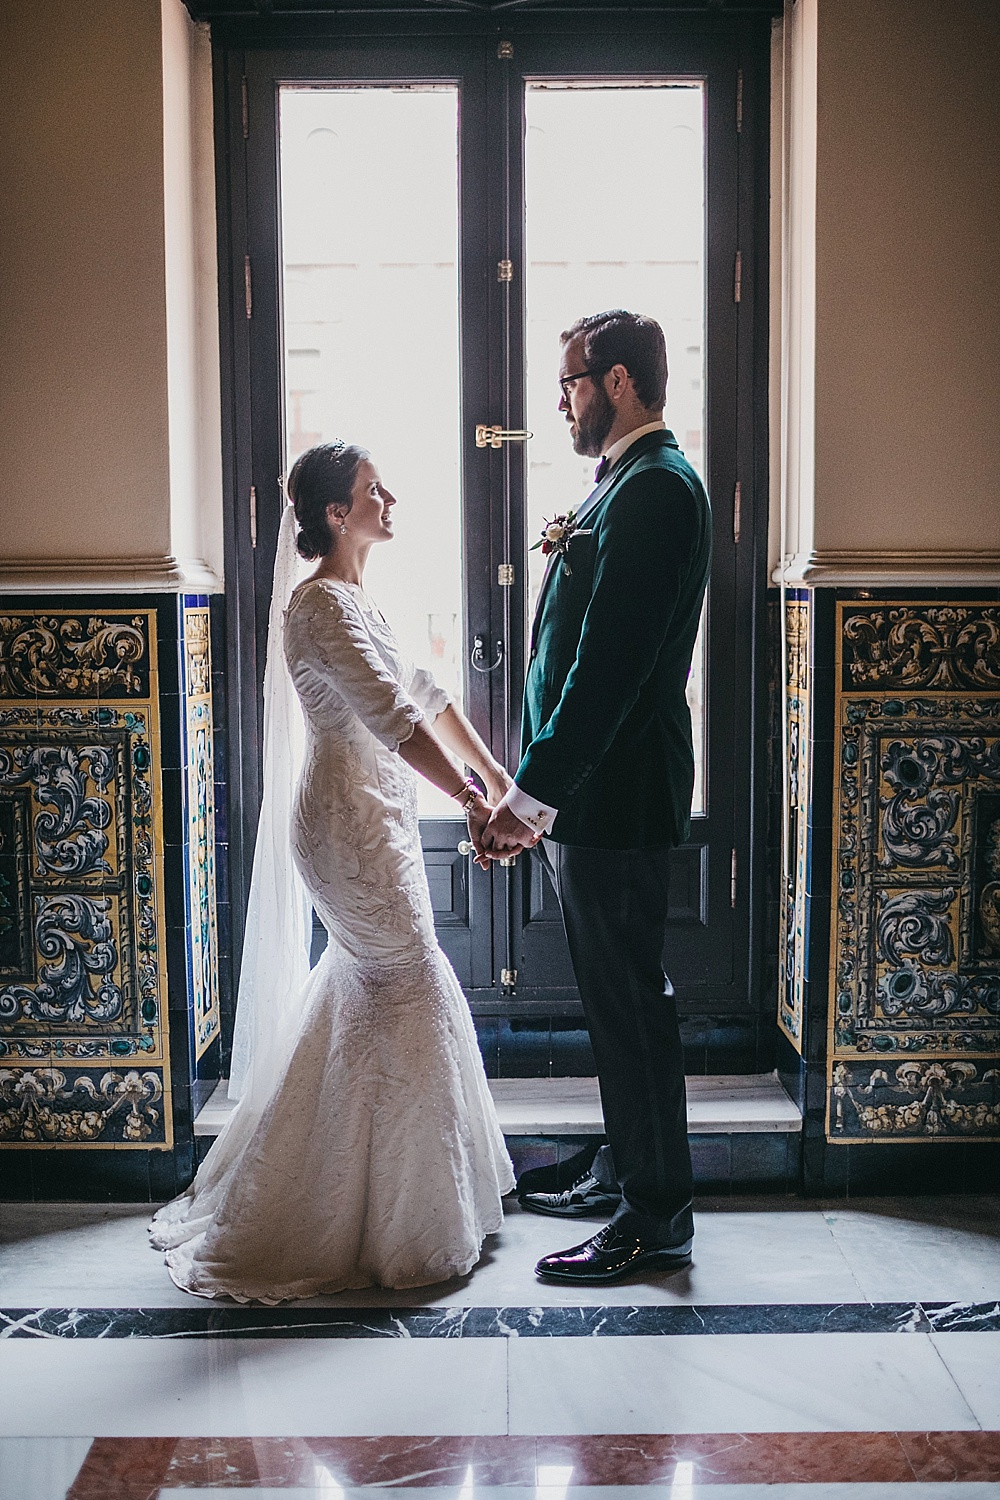 Real Bride Review Of Having Bespoke Wedding Dress Made Abroad In New ...